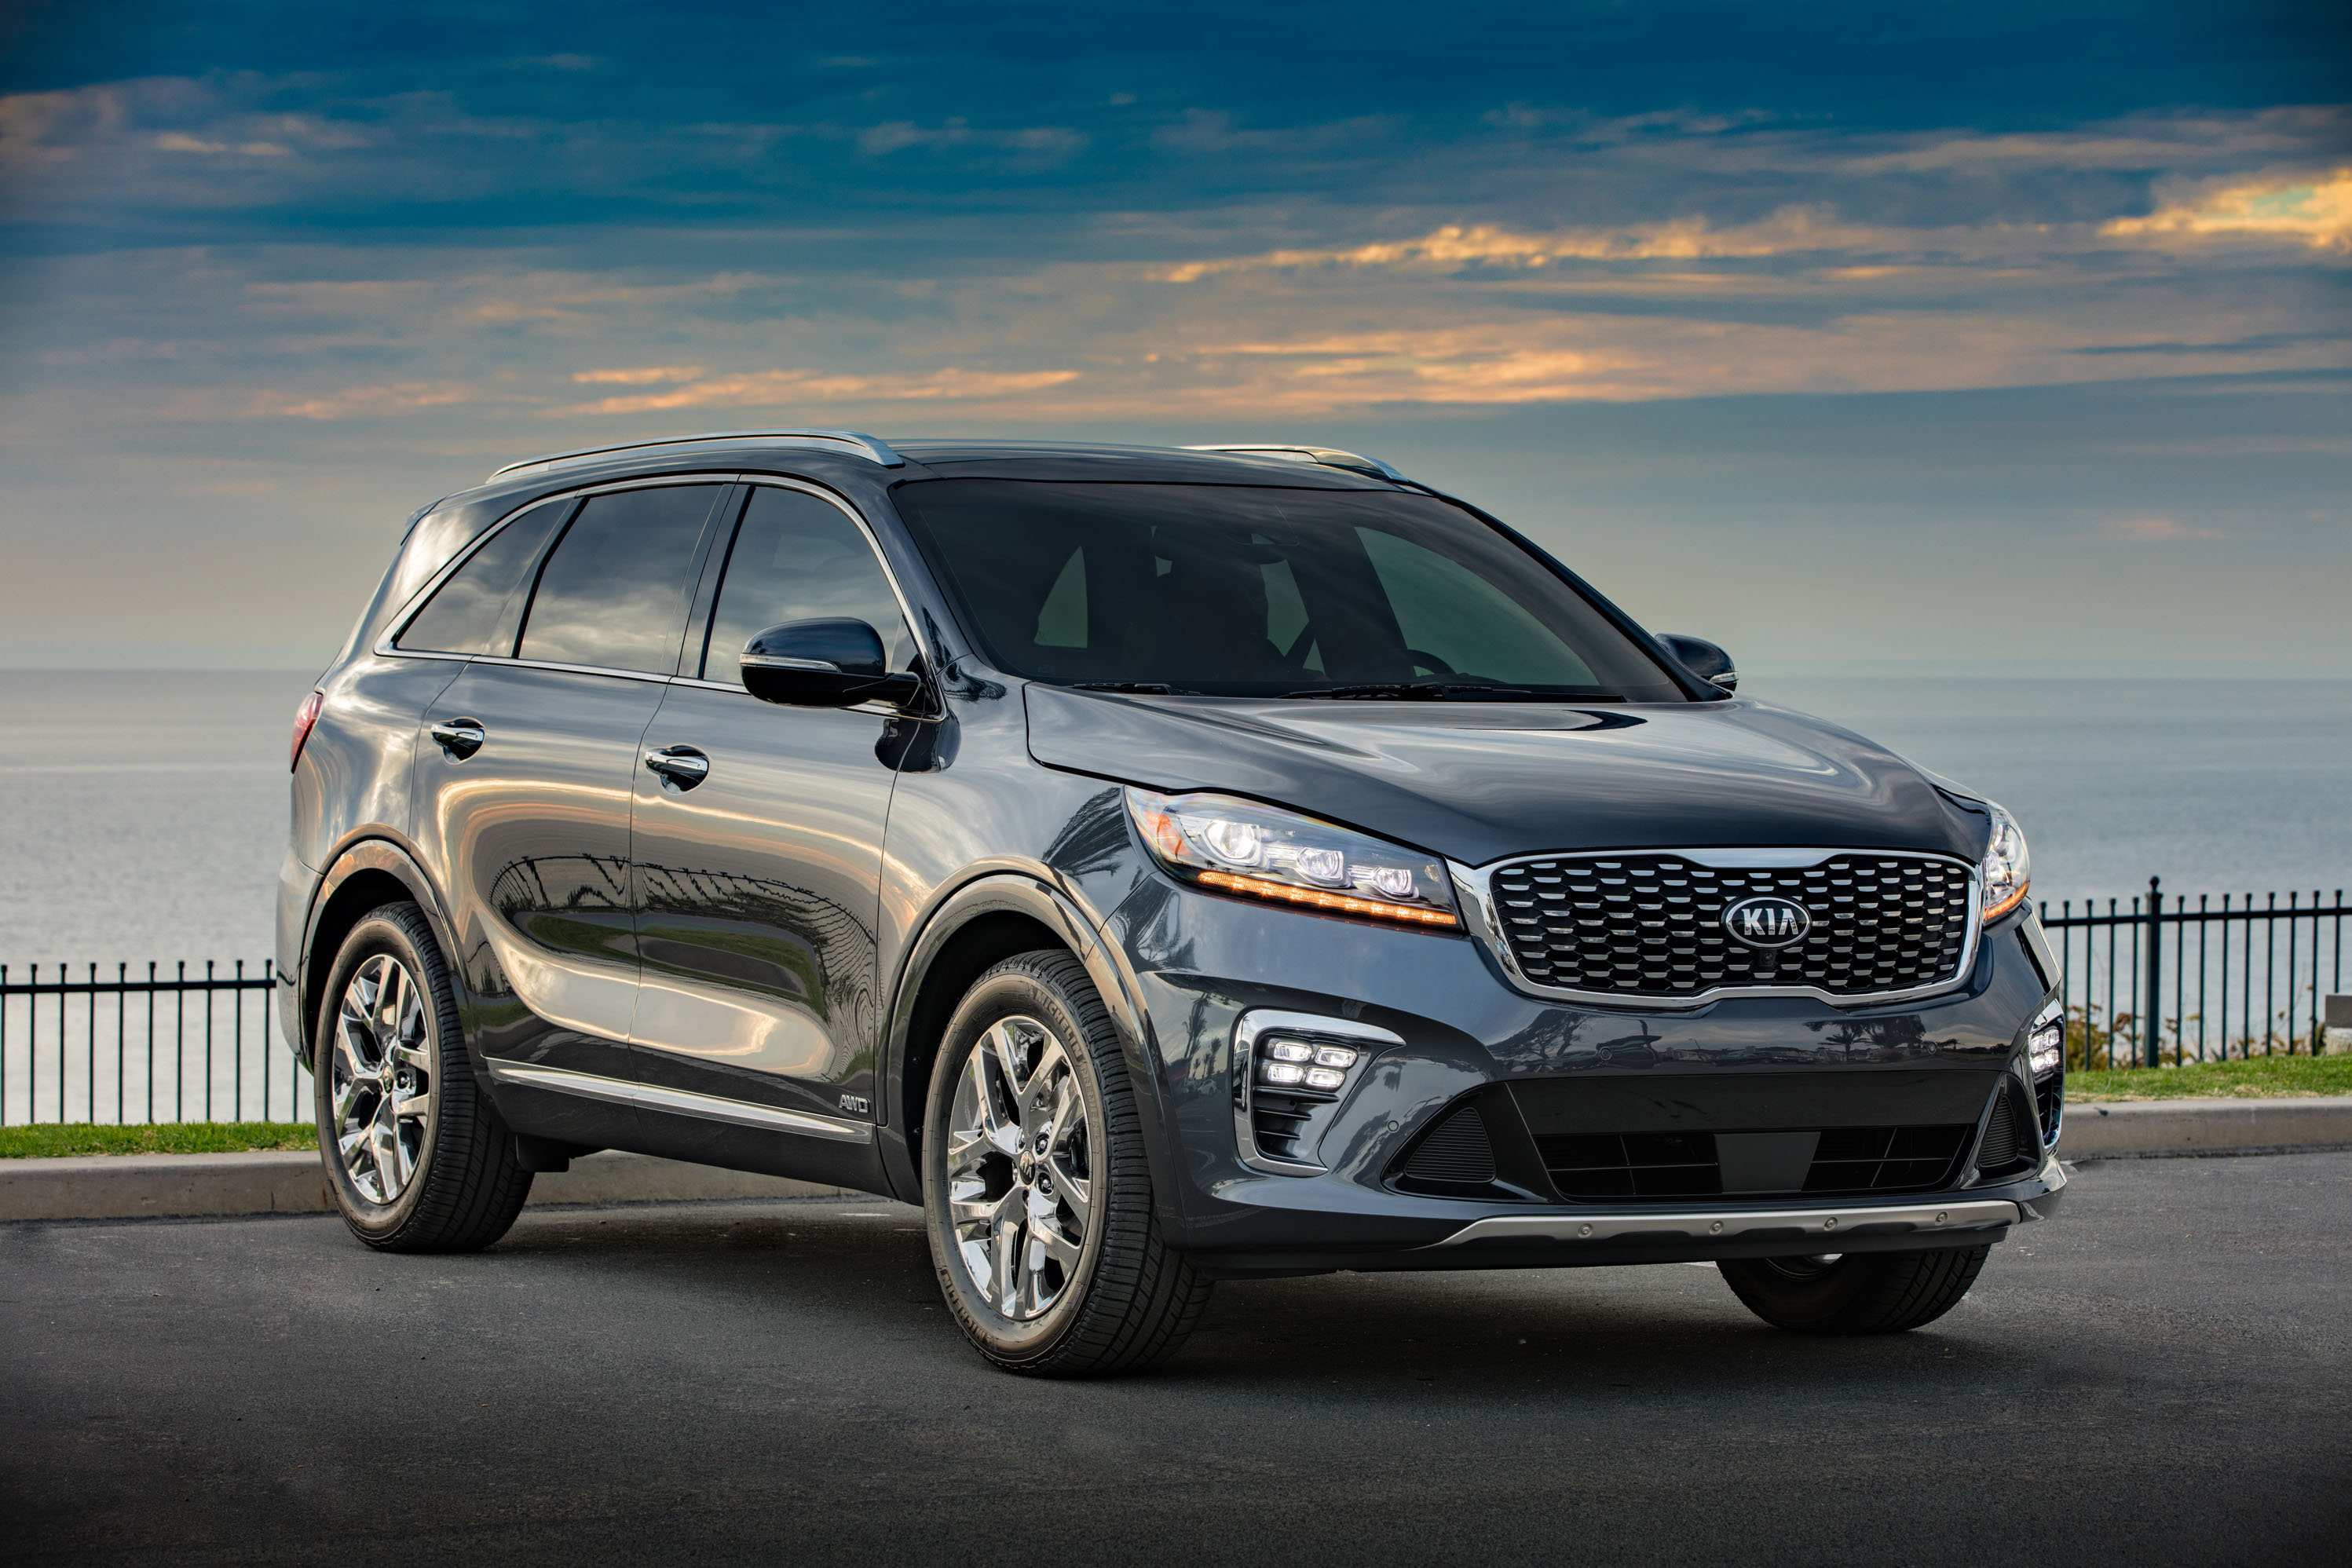 78 All New Kia Diesel 2019 Review And Release Date